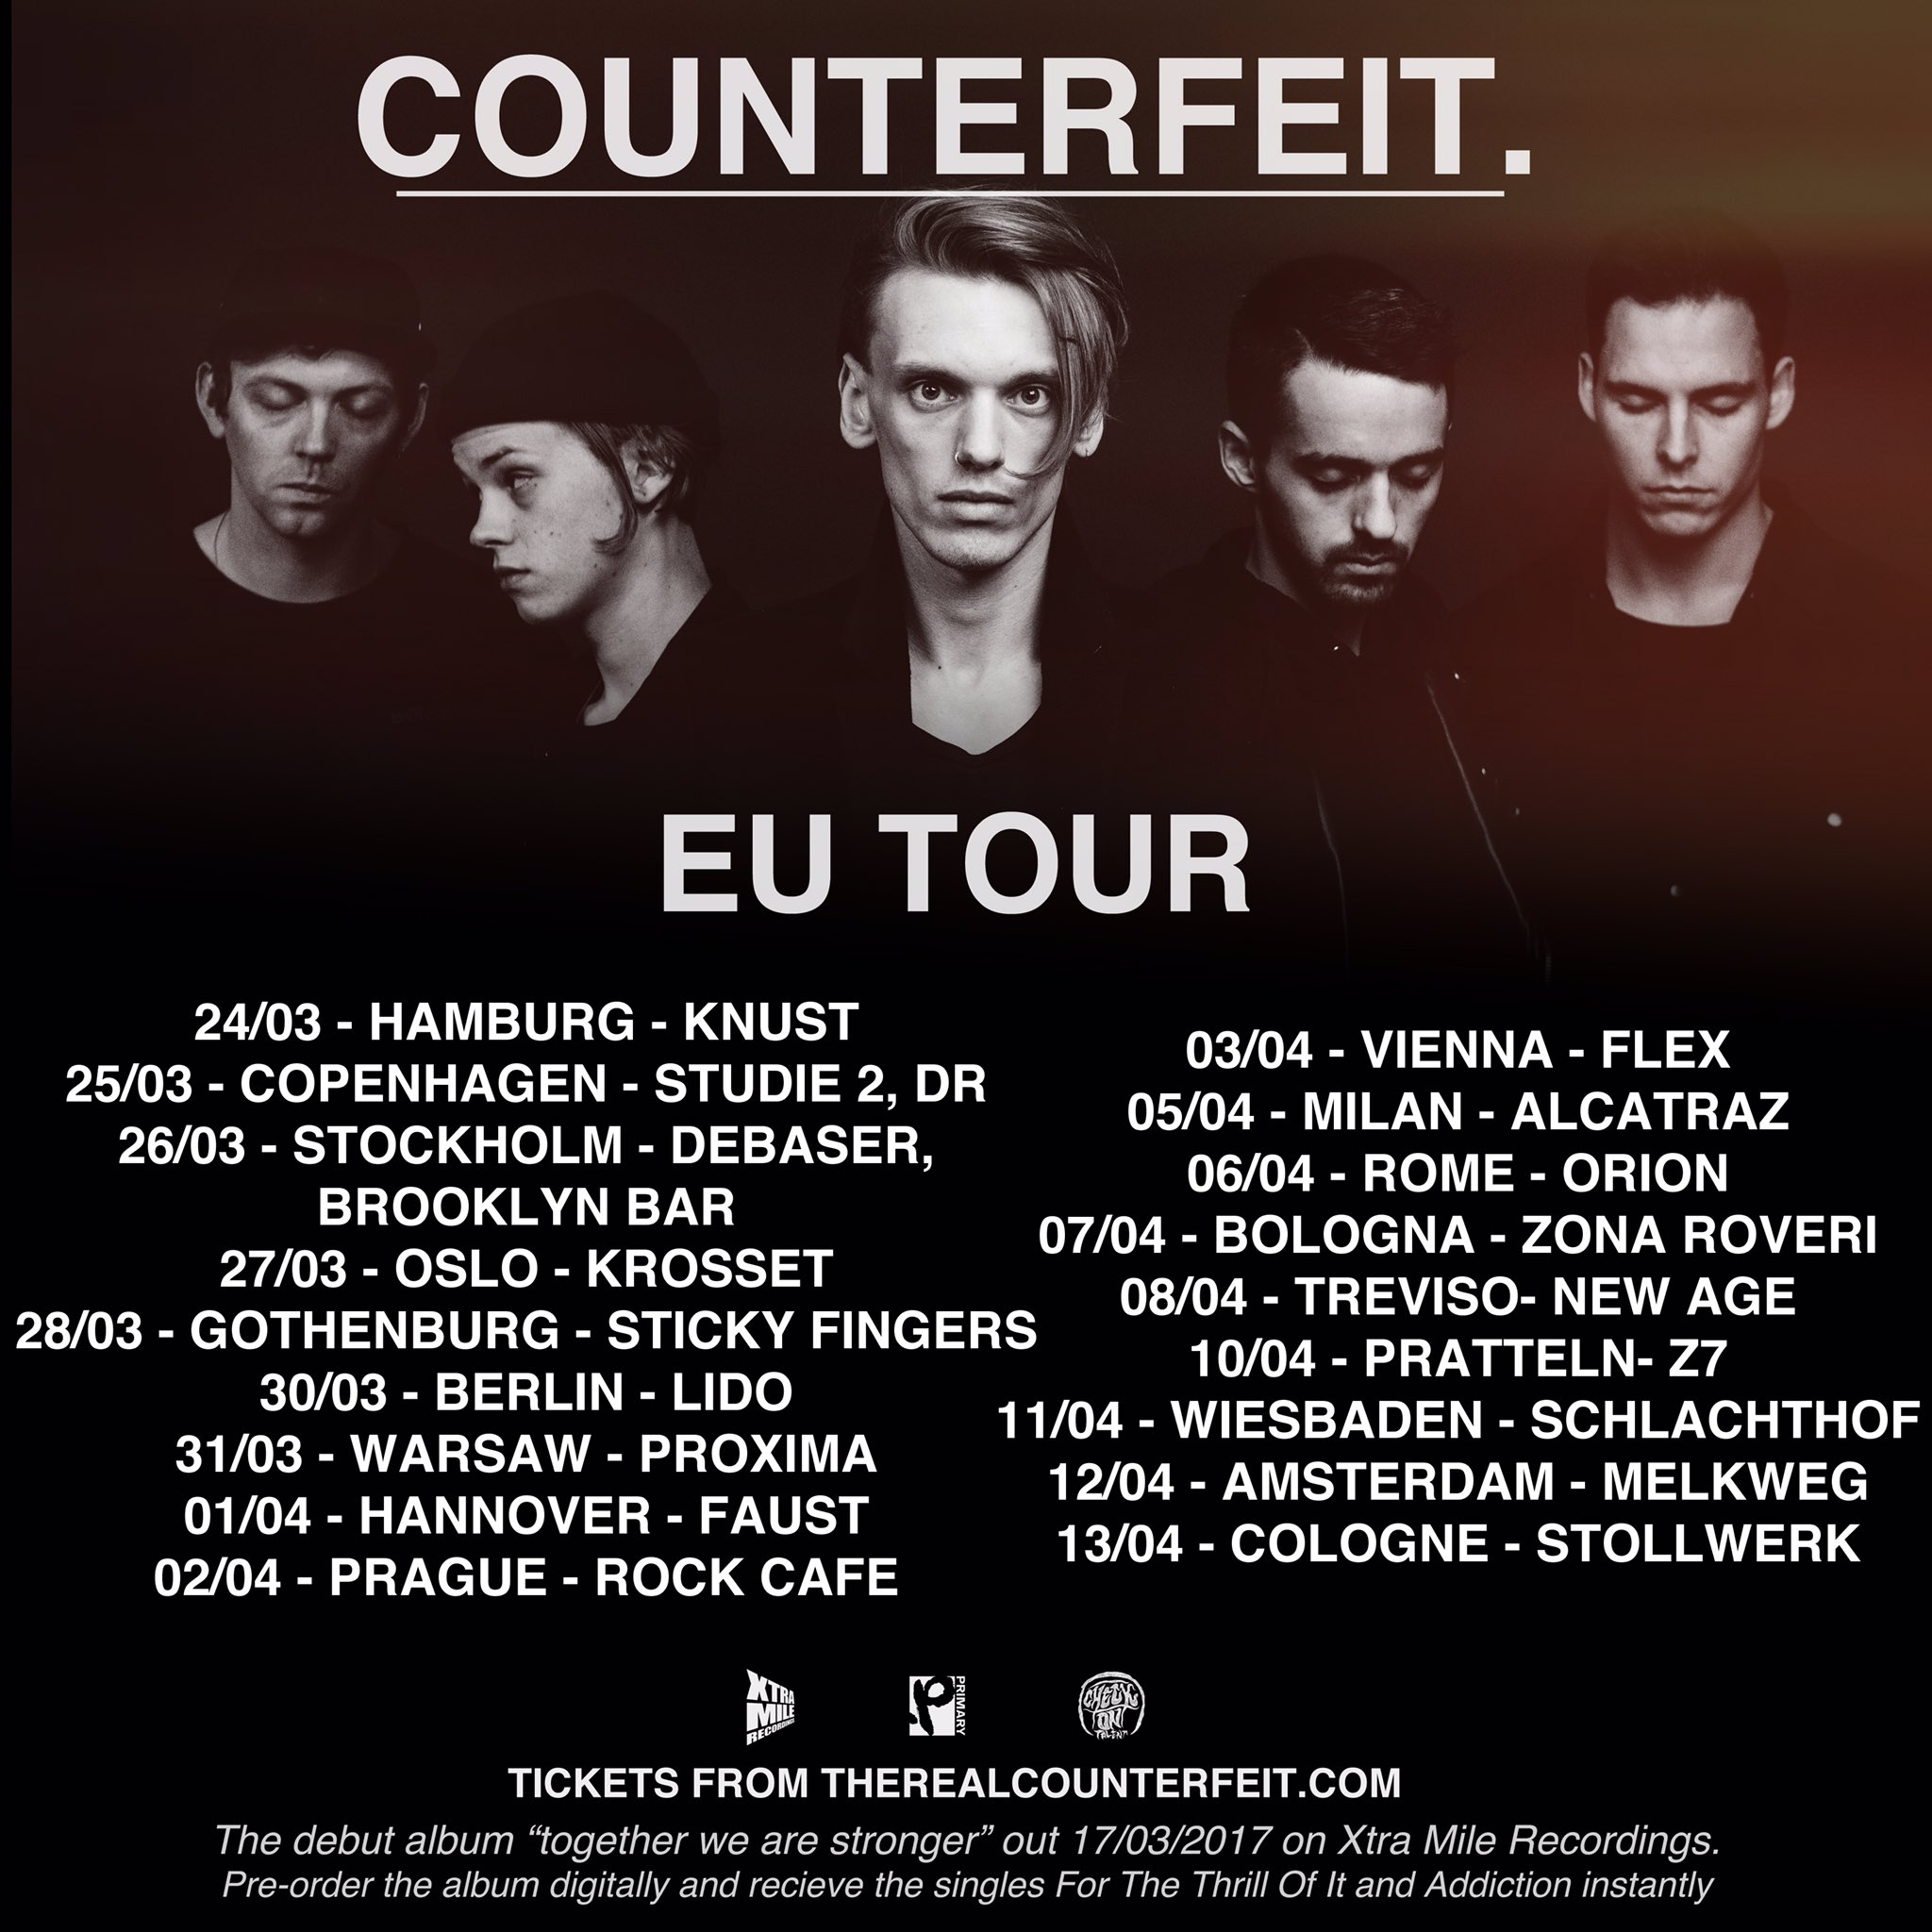 EUROPE ITS ON. MARCH / APRIL. Tickets going fast so get them whilst you can from https://t.co/ArEdyMcxKq https://t.co/EKcFXatA7F